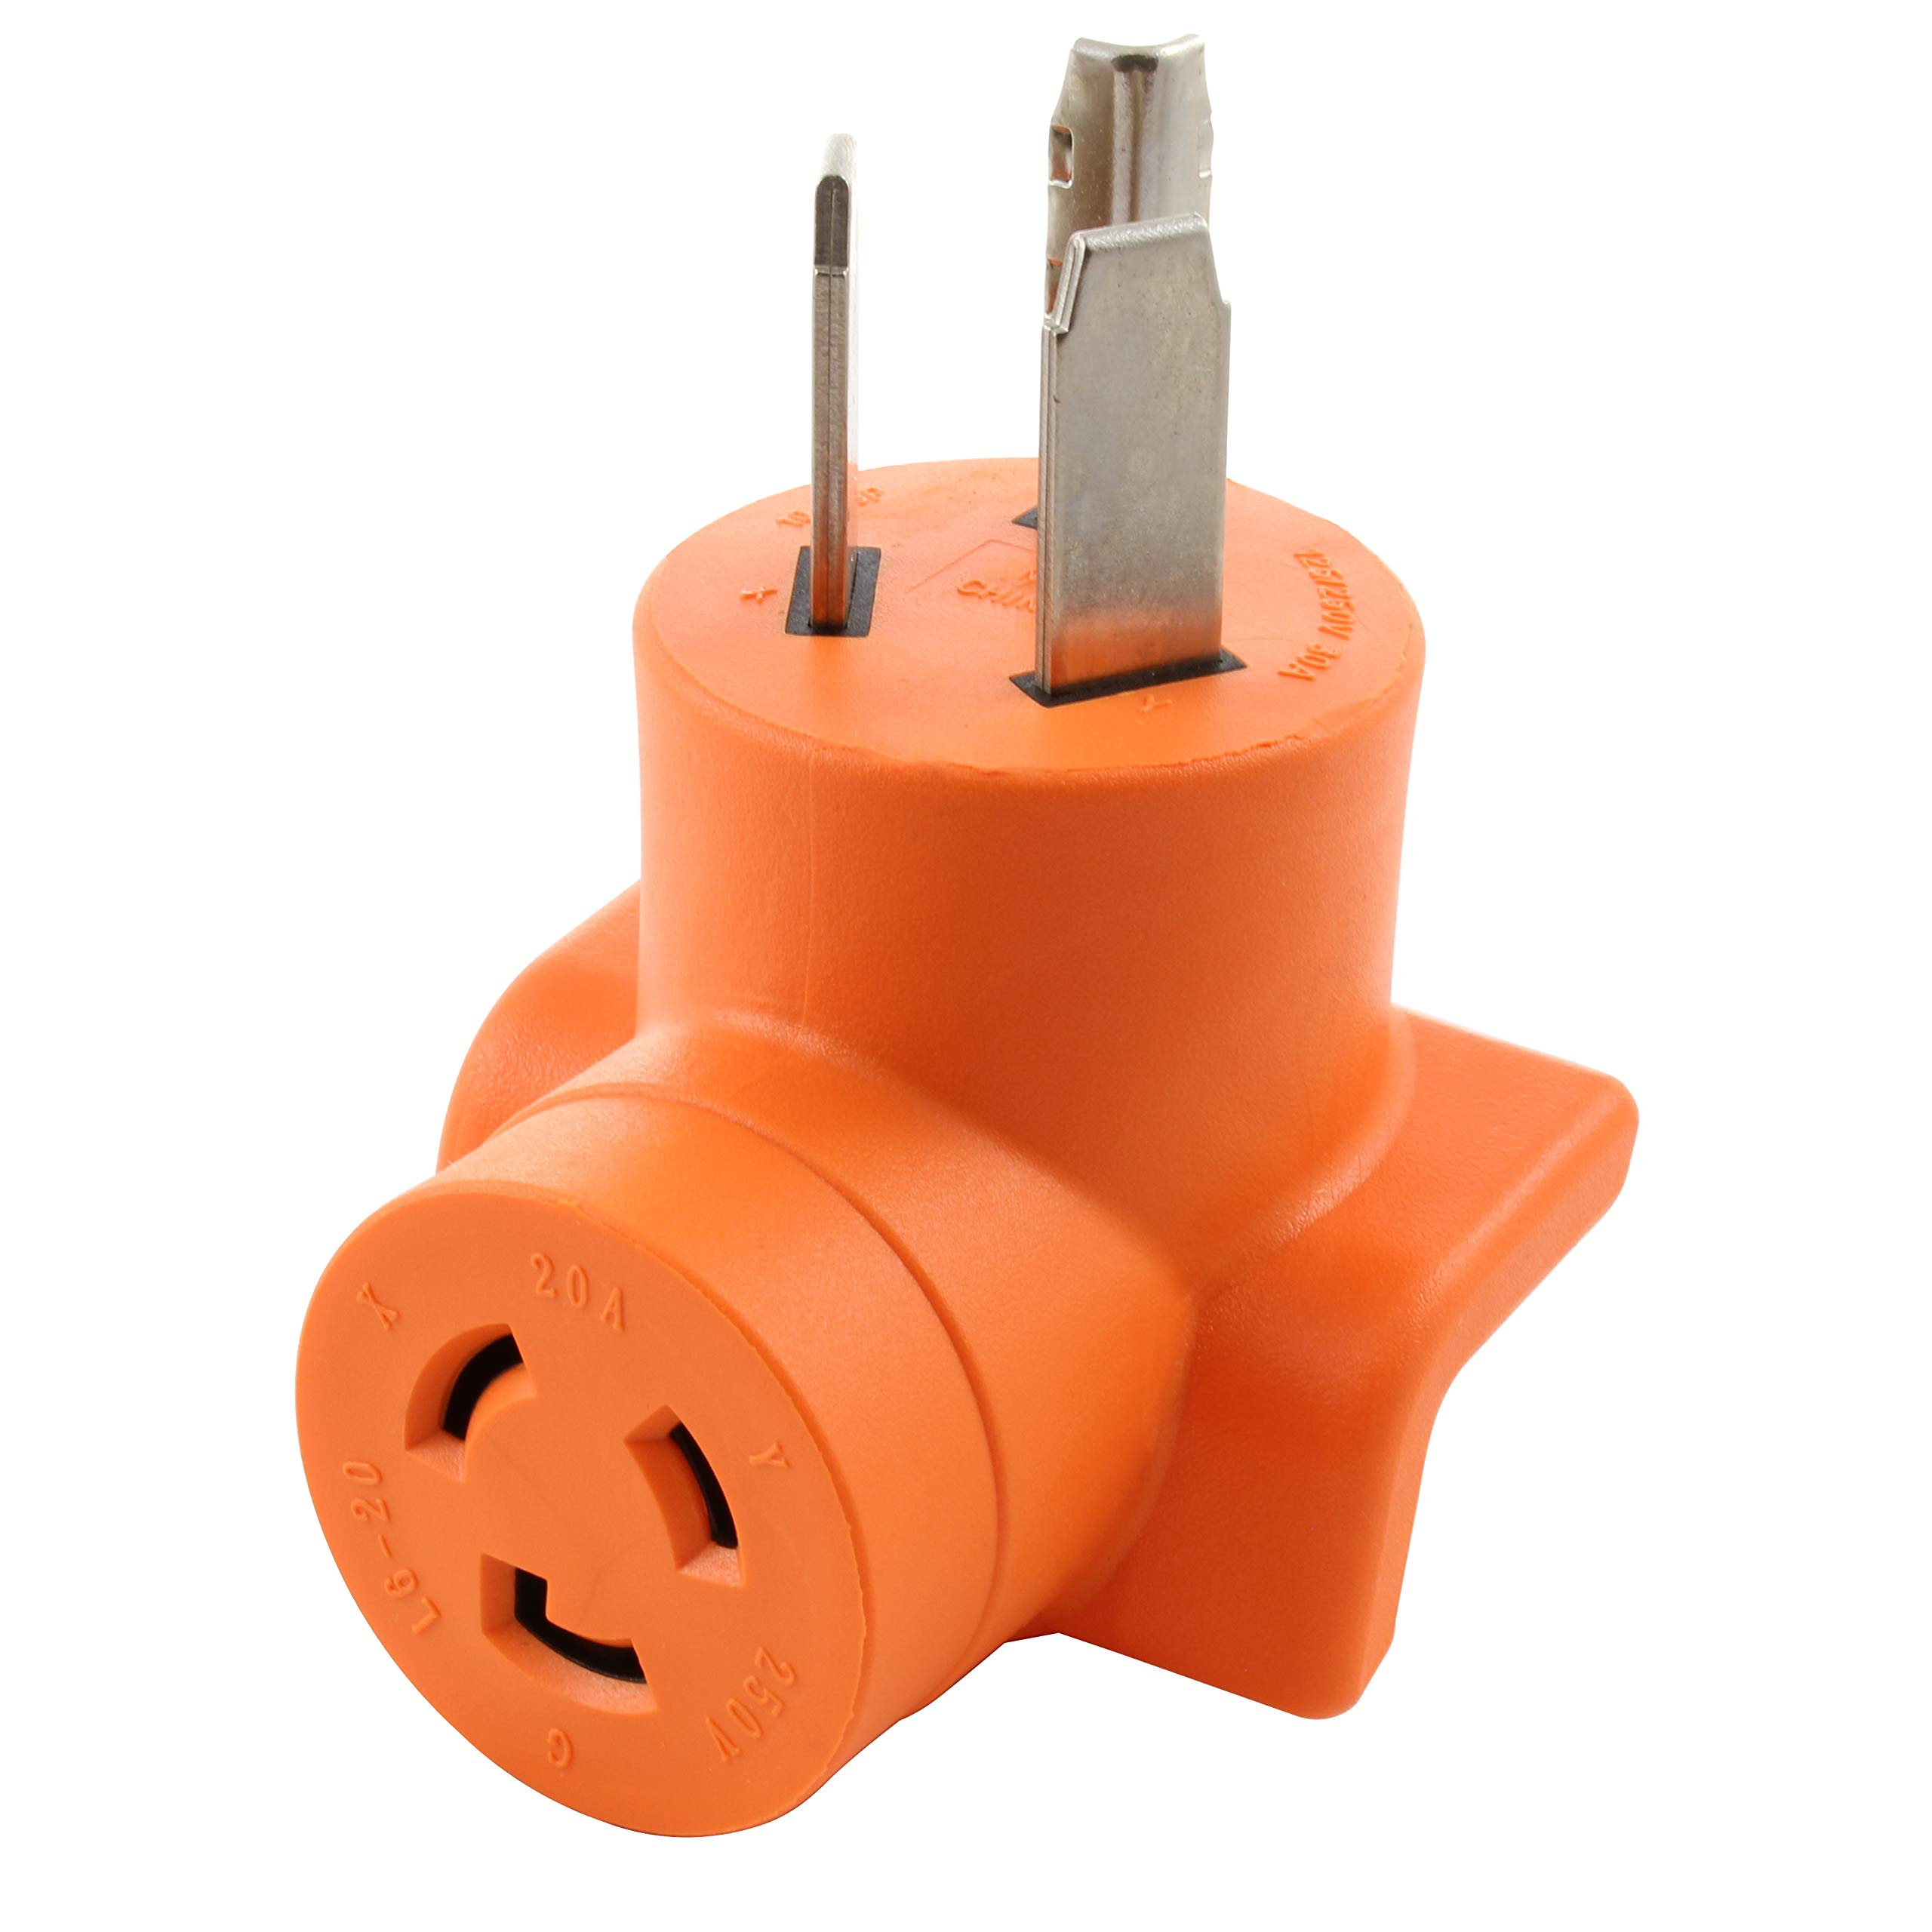 AC WORKS [AD1030L620] 3-Prong Dryer Oulet to L6-20 20Amp 250Volt Locking Female Adapter by AC WORKS (Image #1)